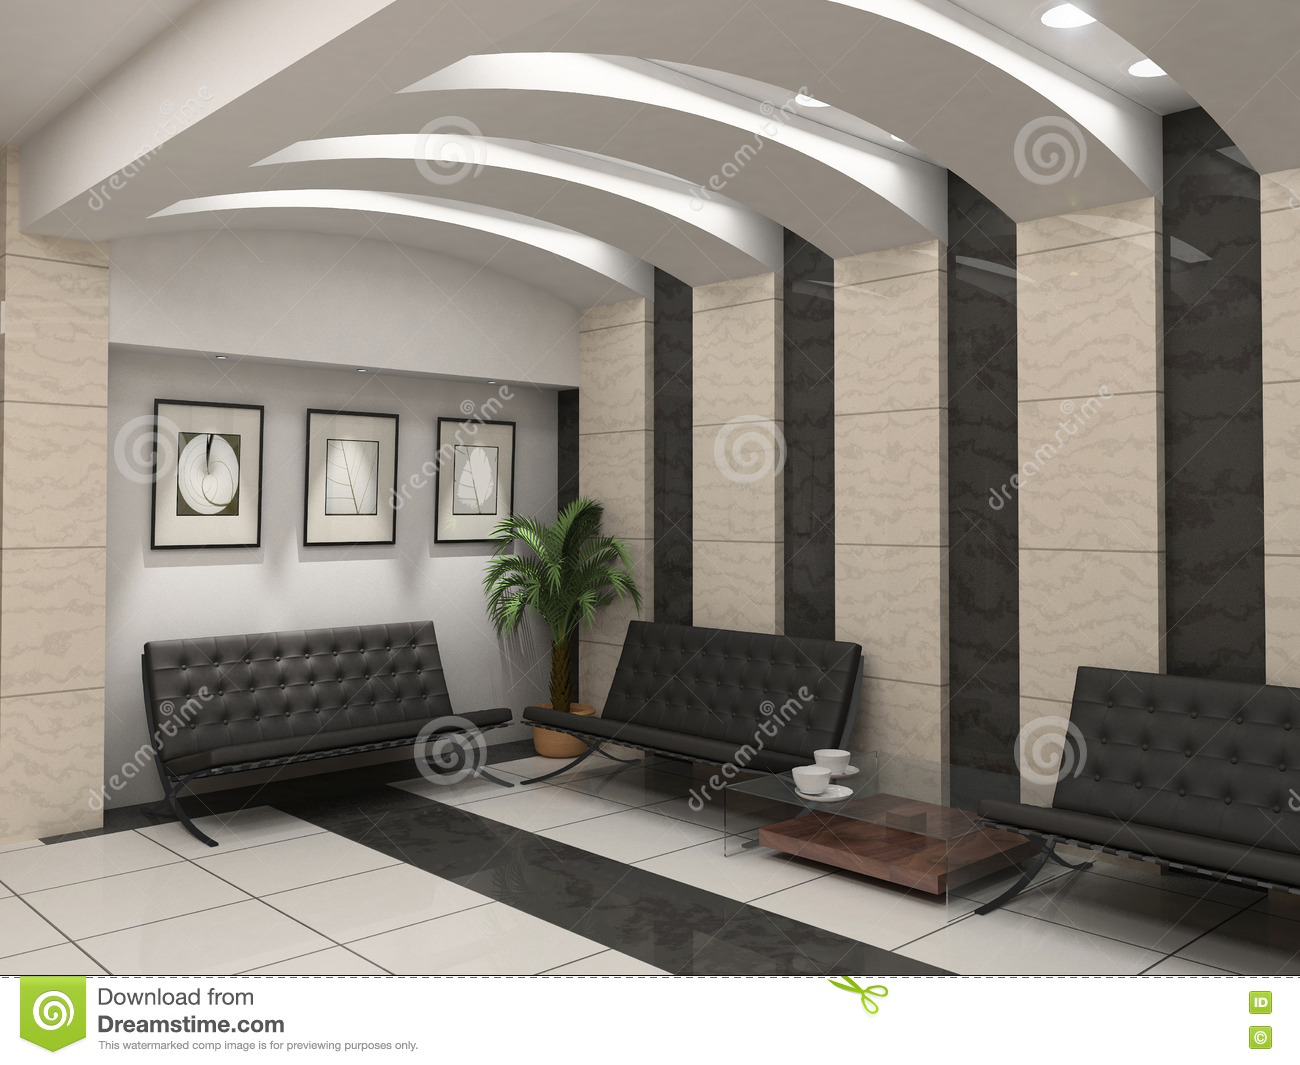 Foyer Architecture Website : Modern foyer interior stock illustration of